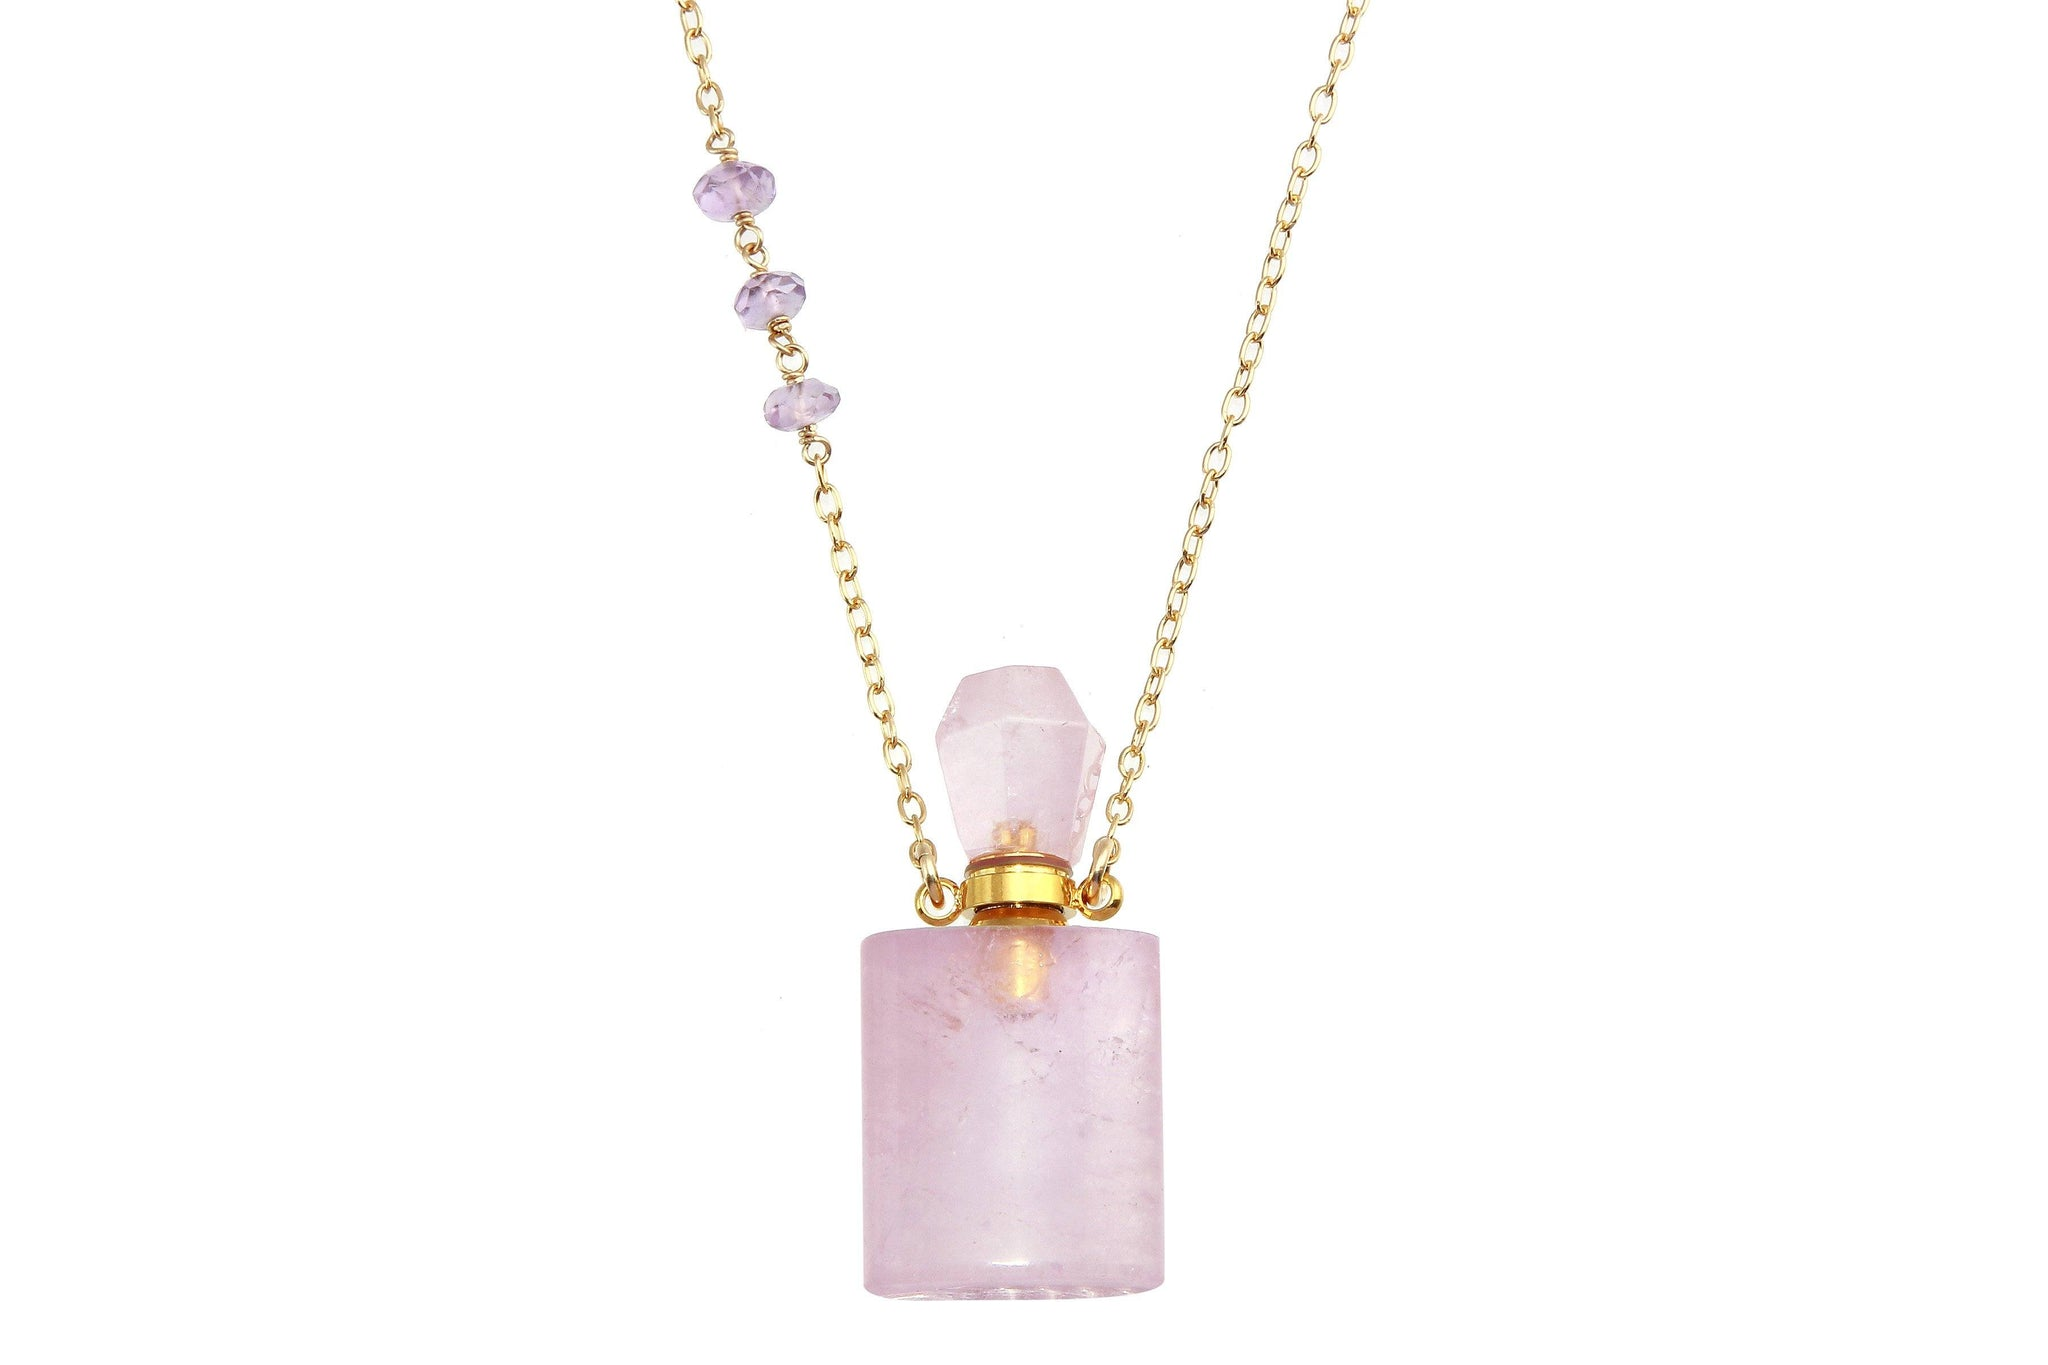 Amethyst crystal potion necklace - for potions, perfume or oils